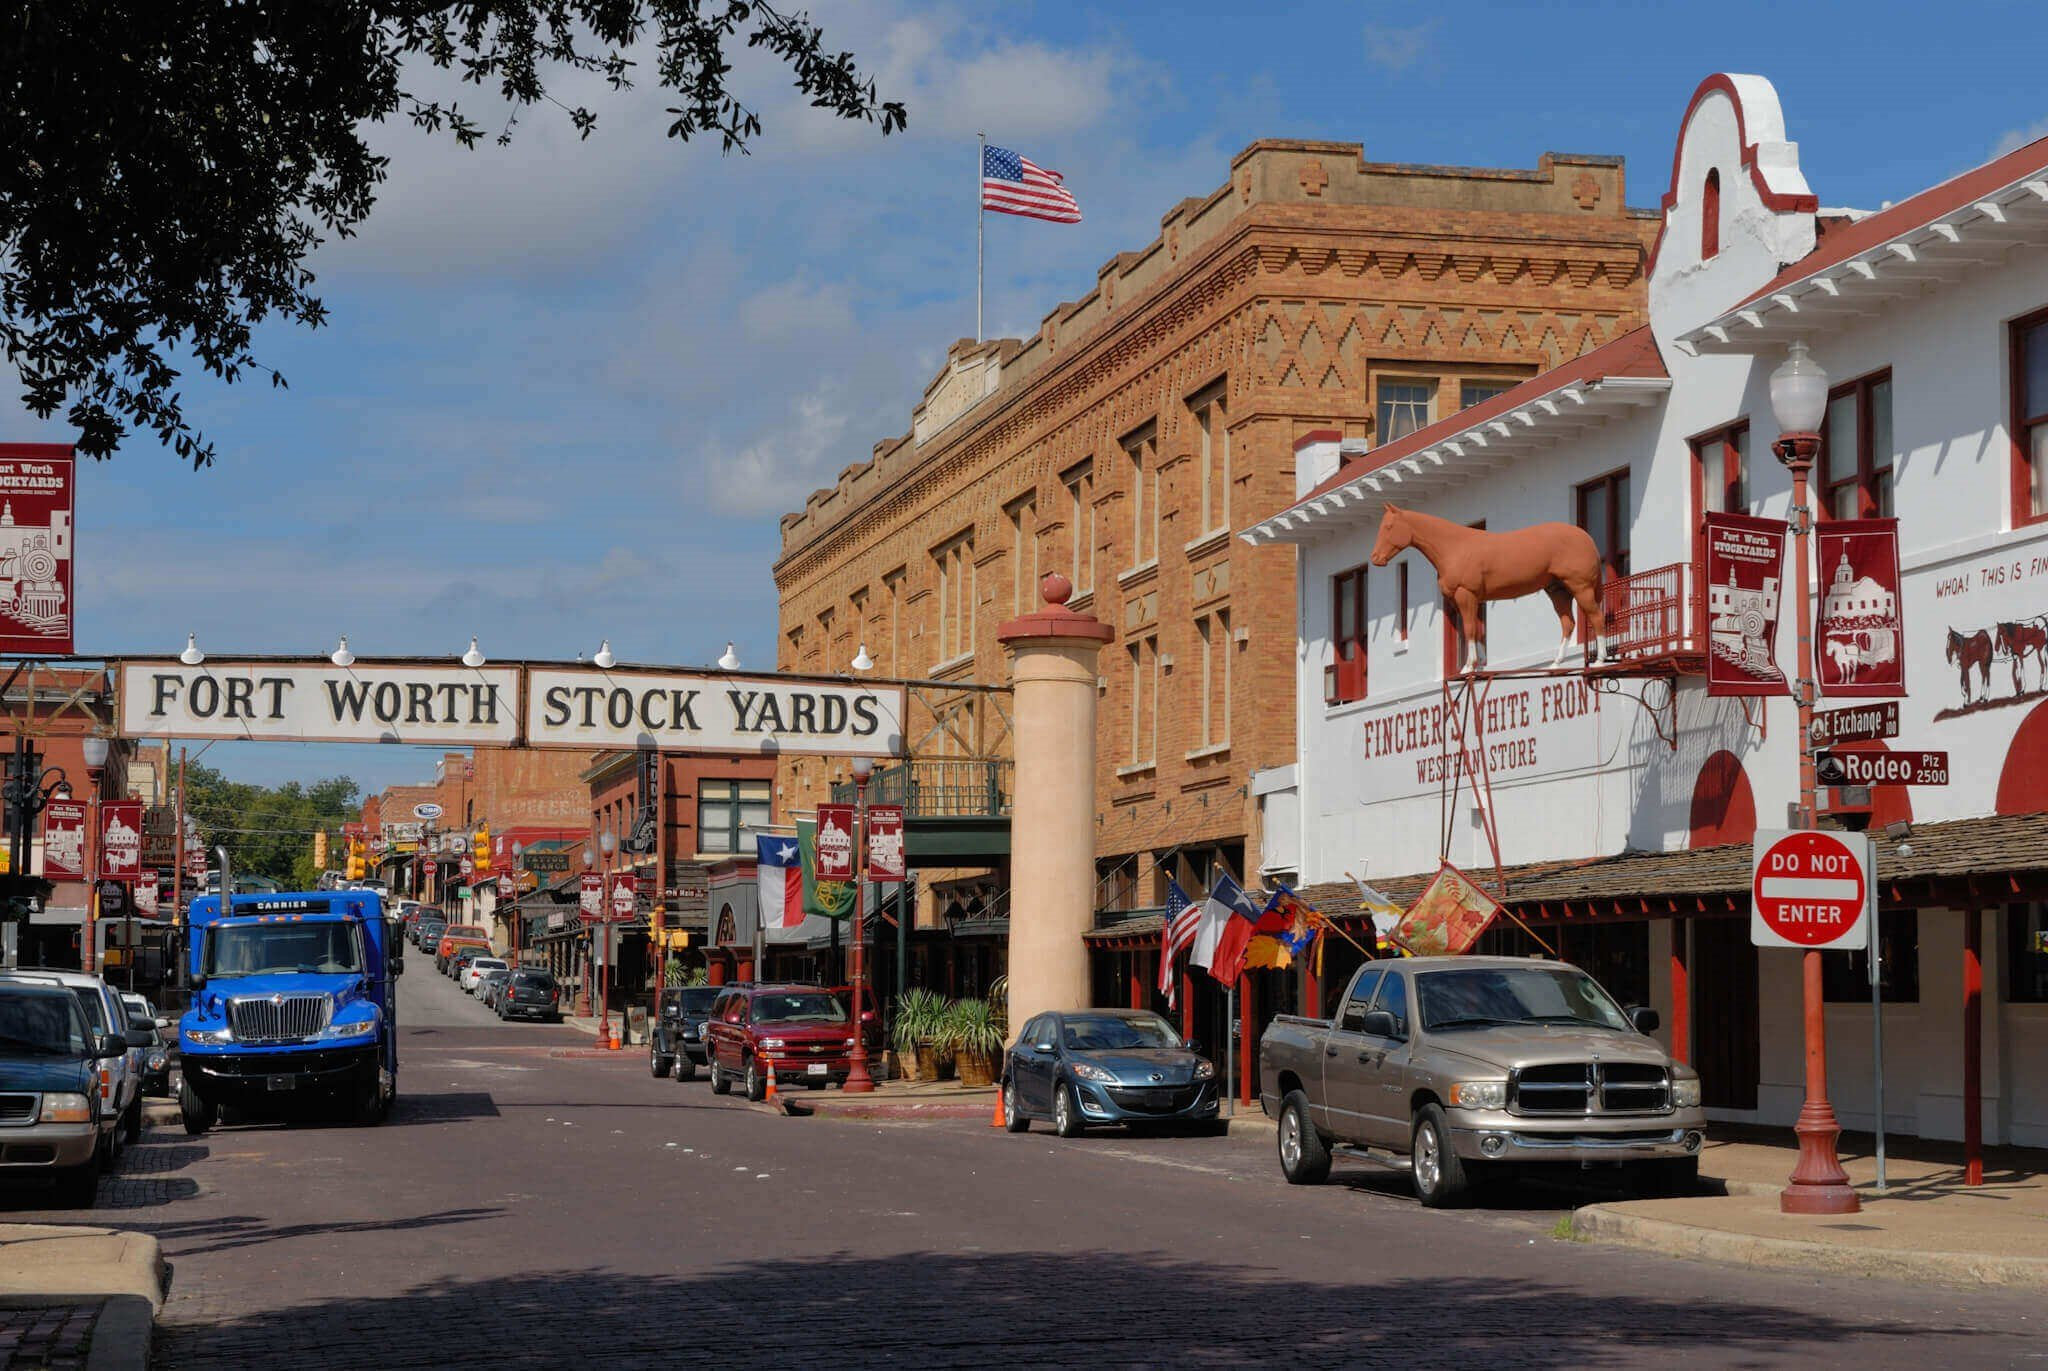 Image of Fort Worth Stockyards